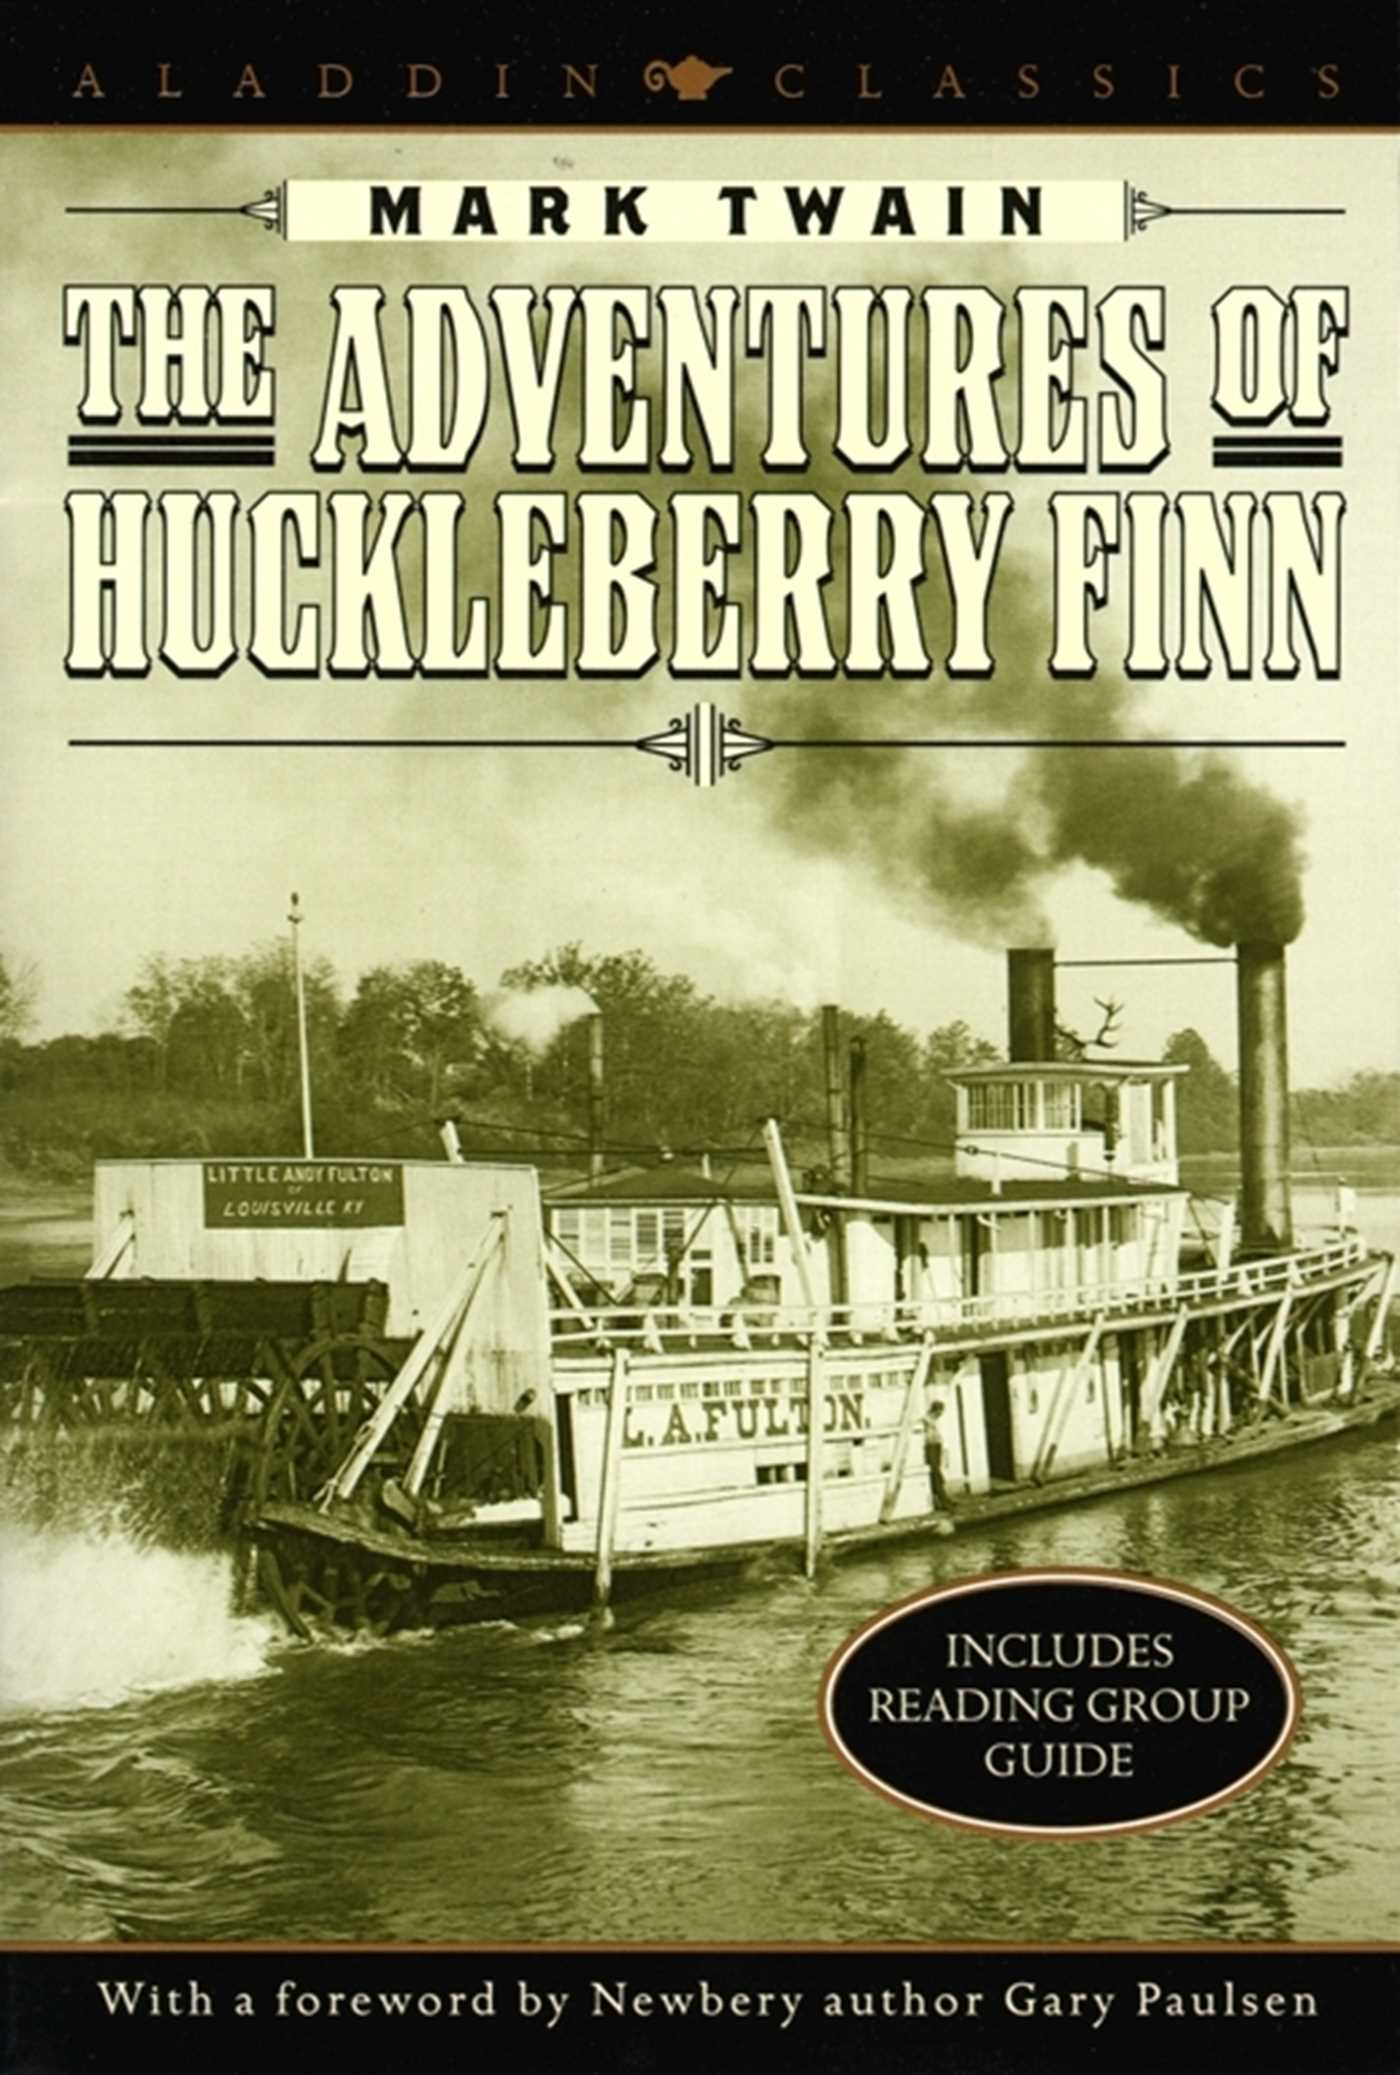 parenthood in adventures of huckleberry finn by mark twain Mark twain was not quite 50 when he published the adventures of huckleberry finn in february 1885, and in so doing, changed american literature until.